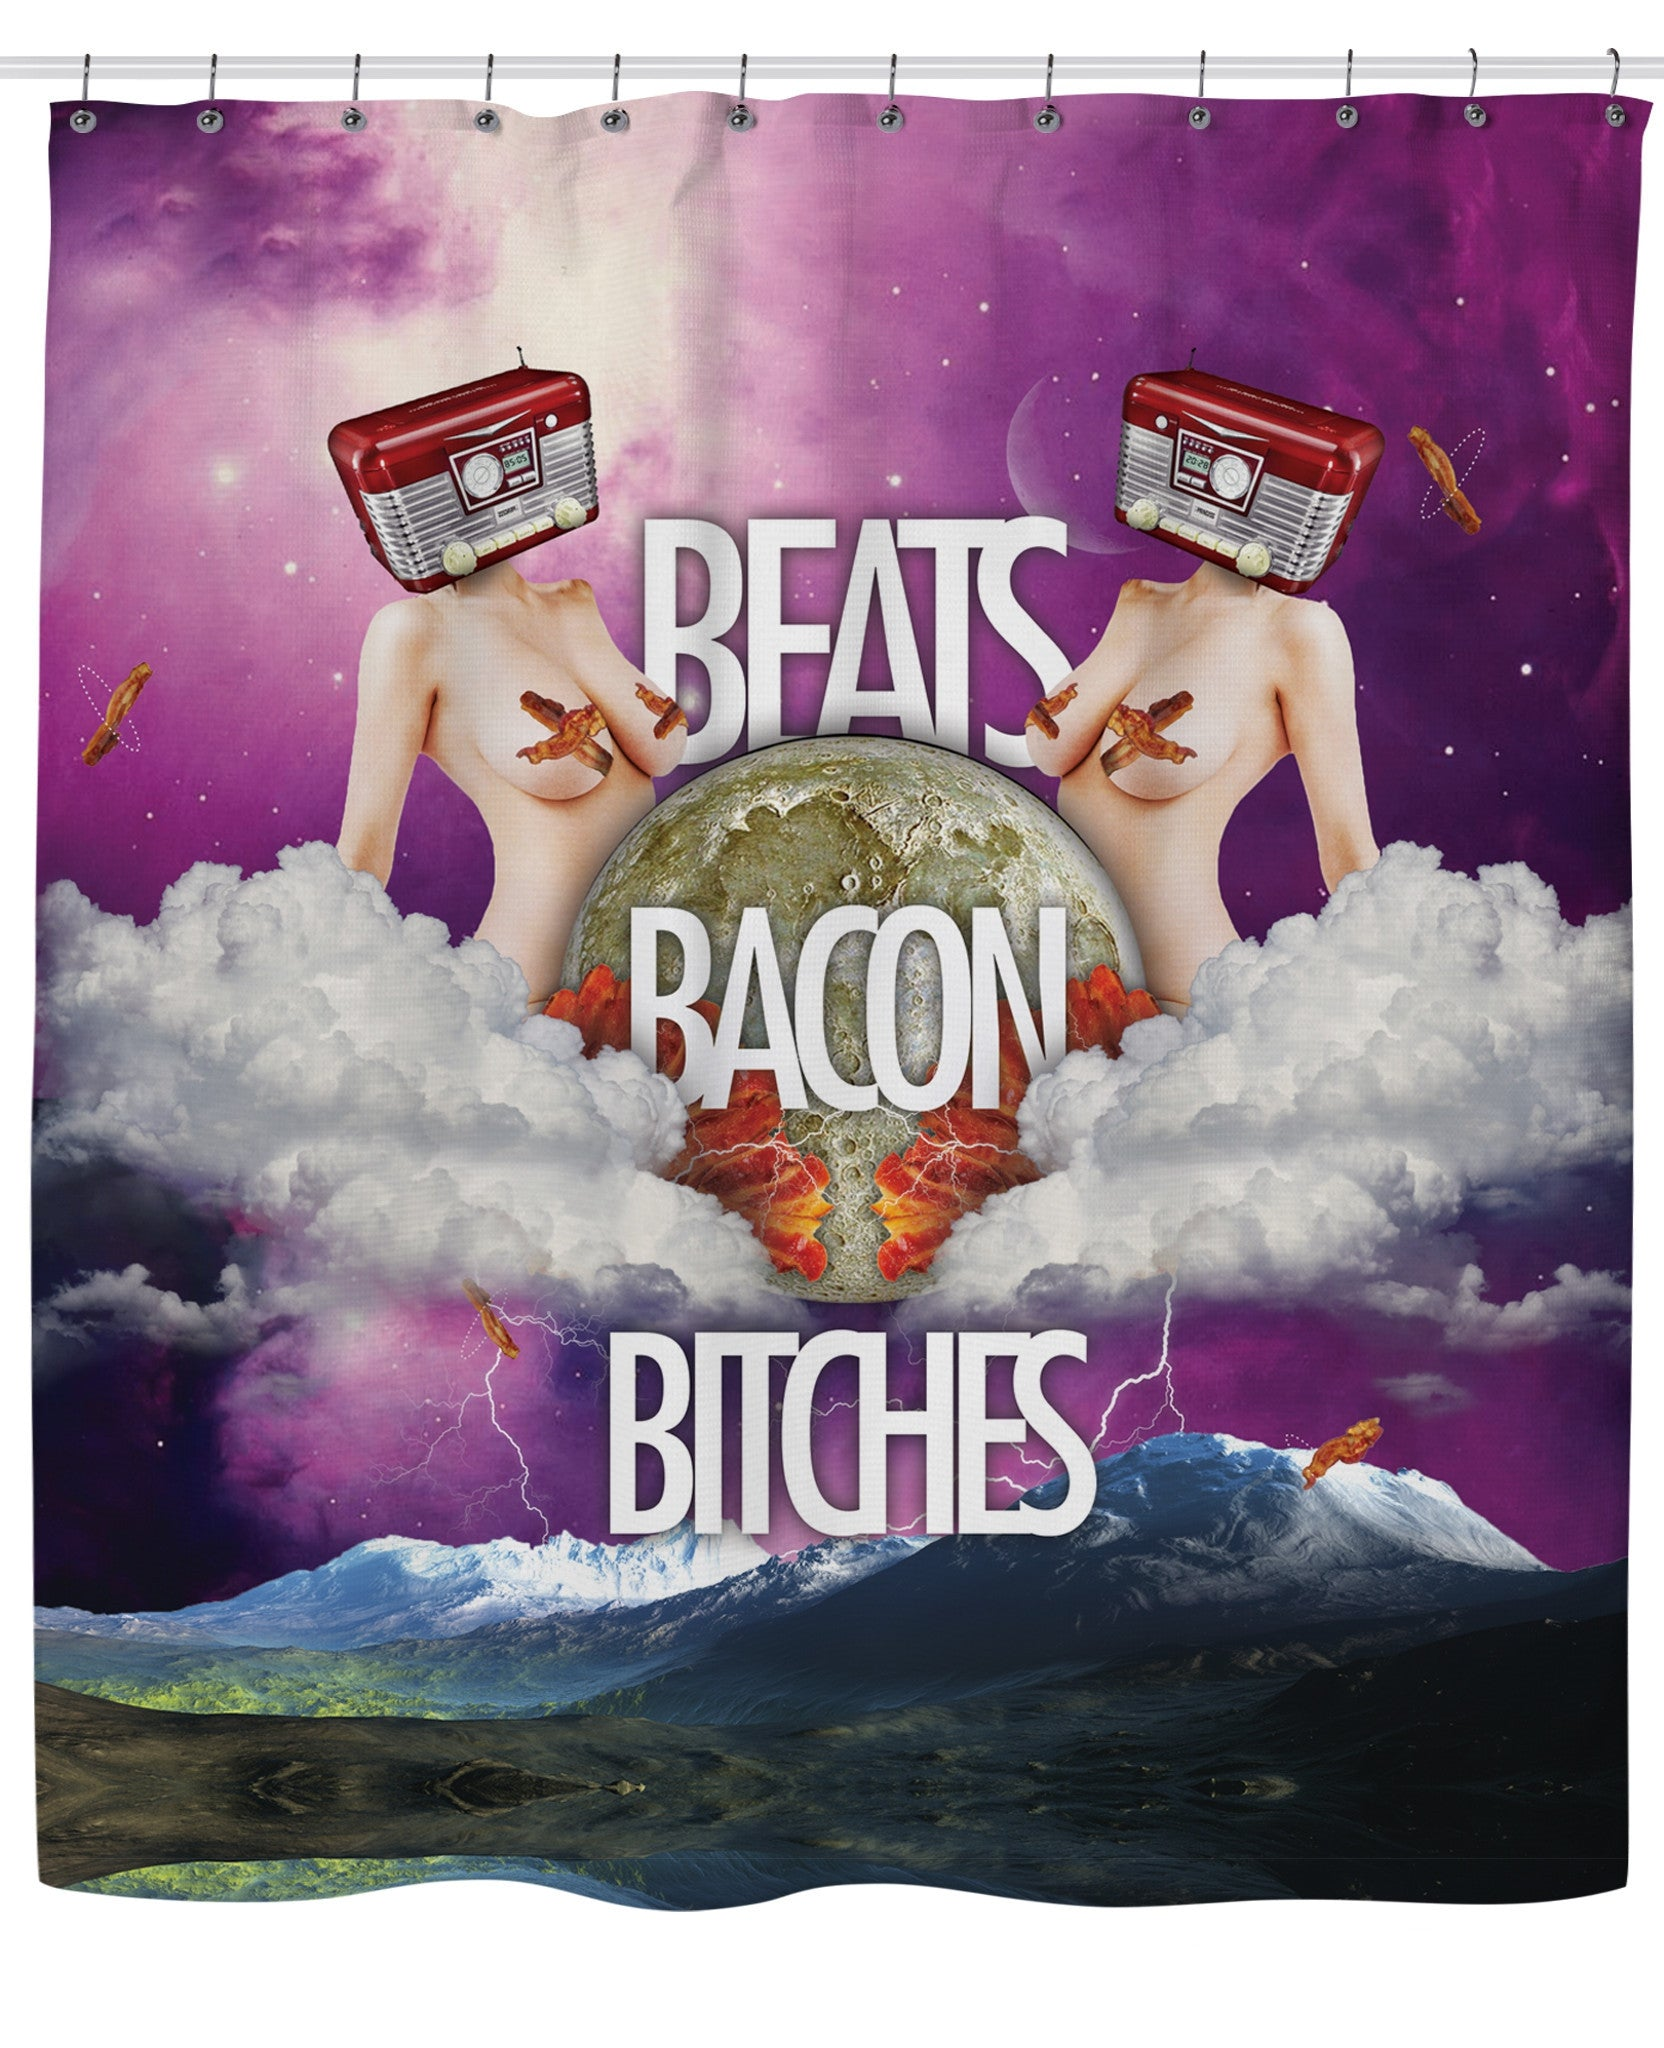 Beats Bacon Bitches Shower Curtain - TShirtsRUS.co